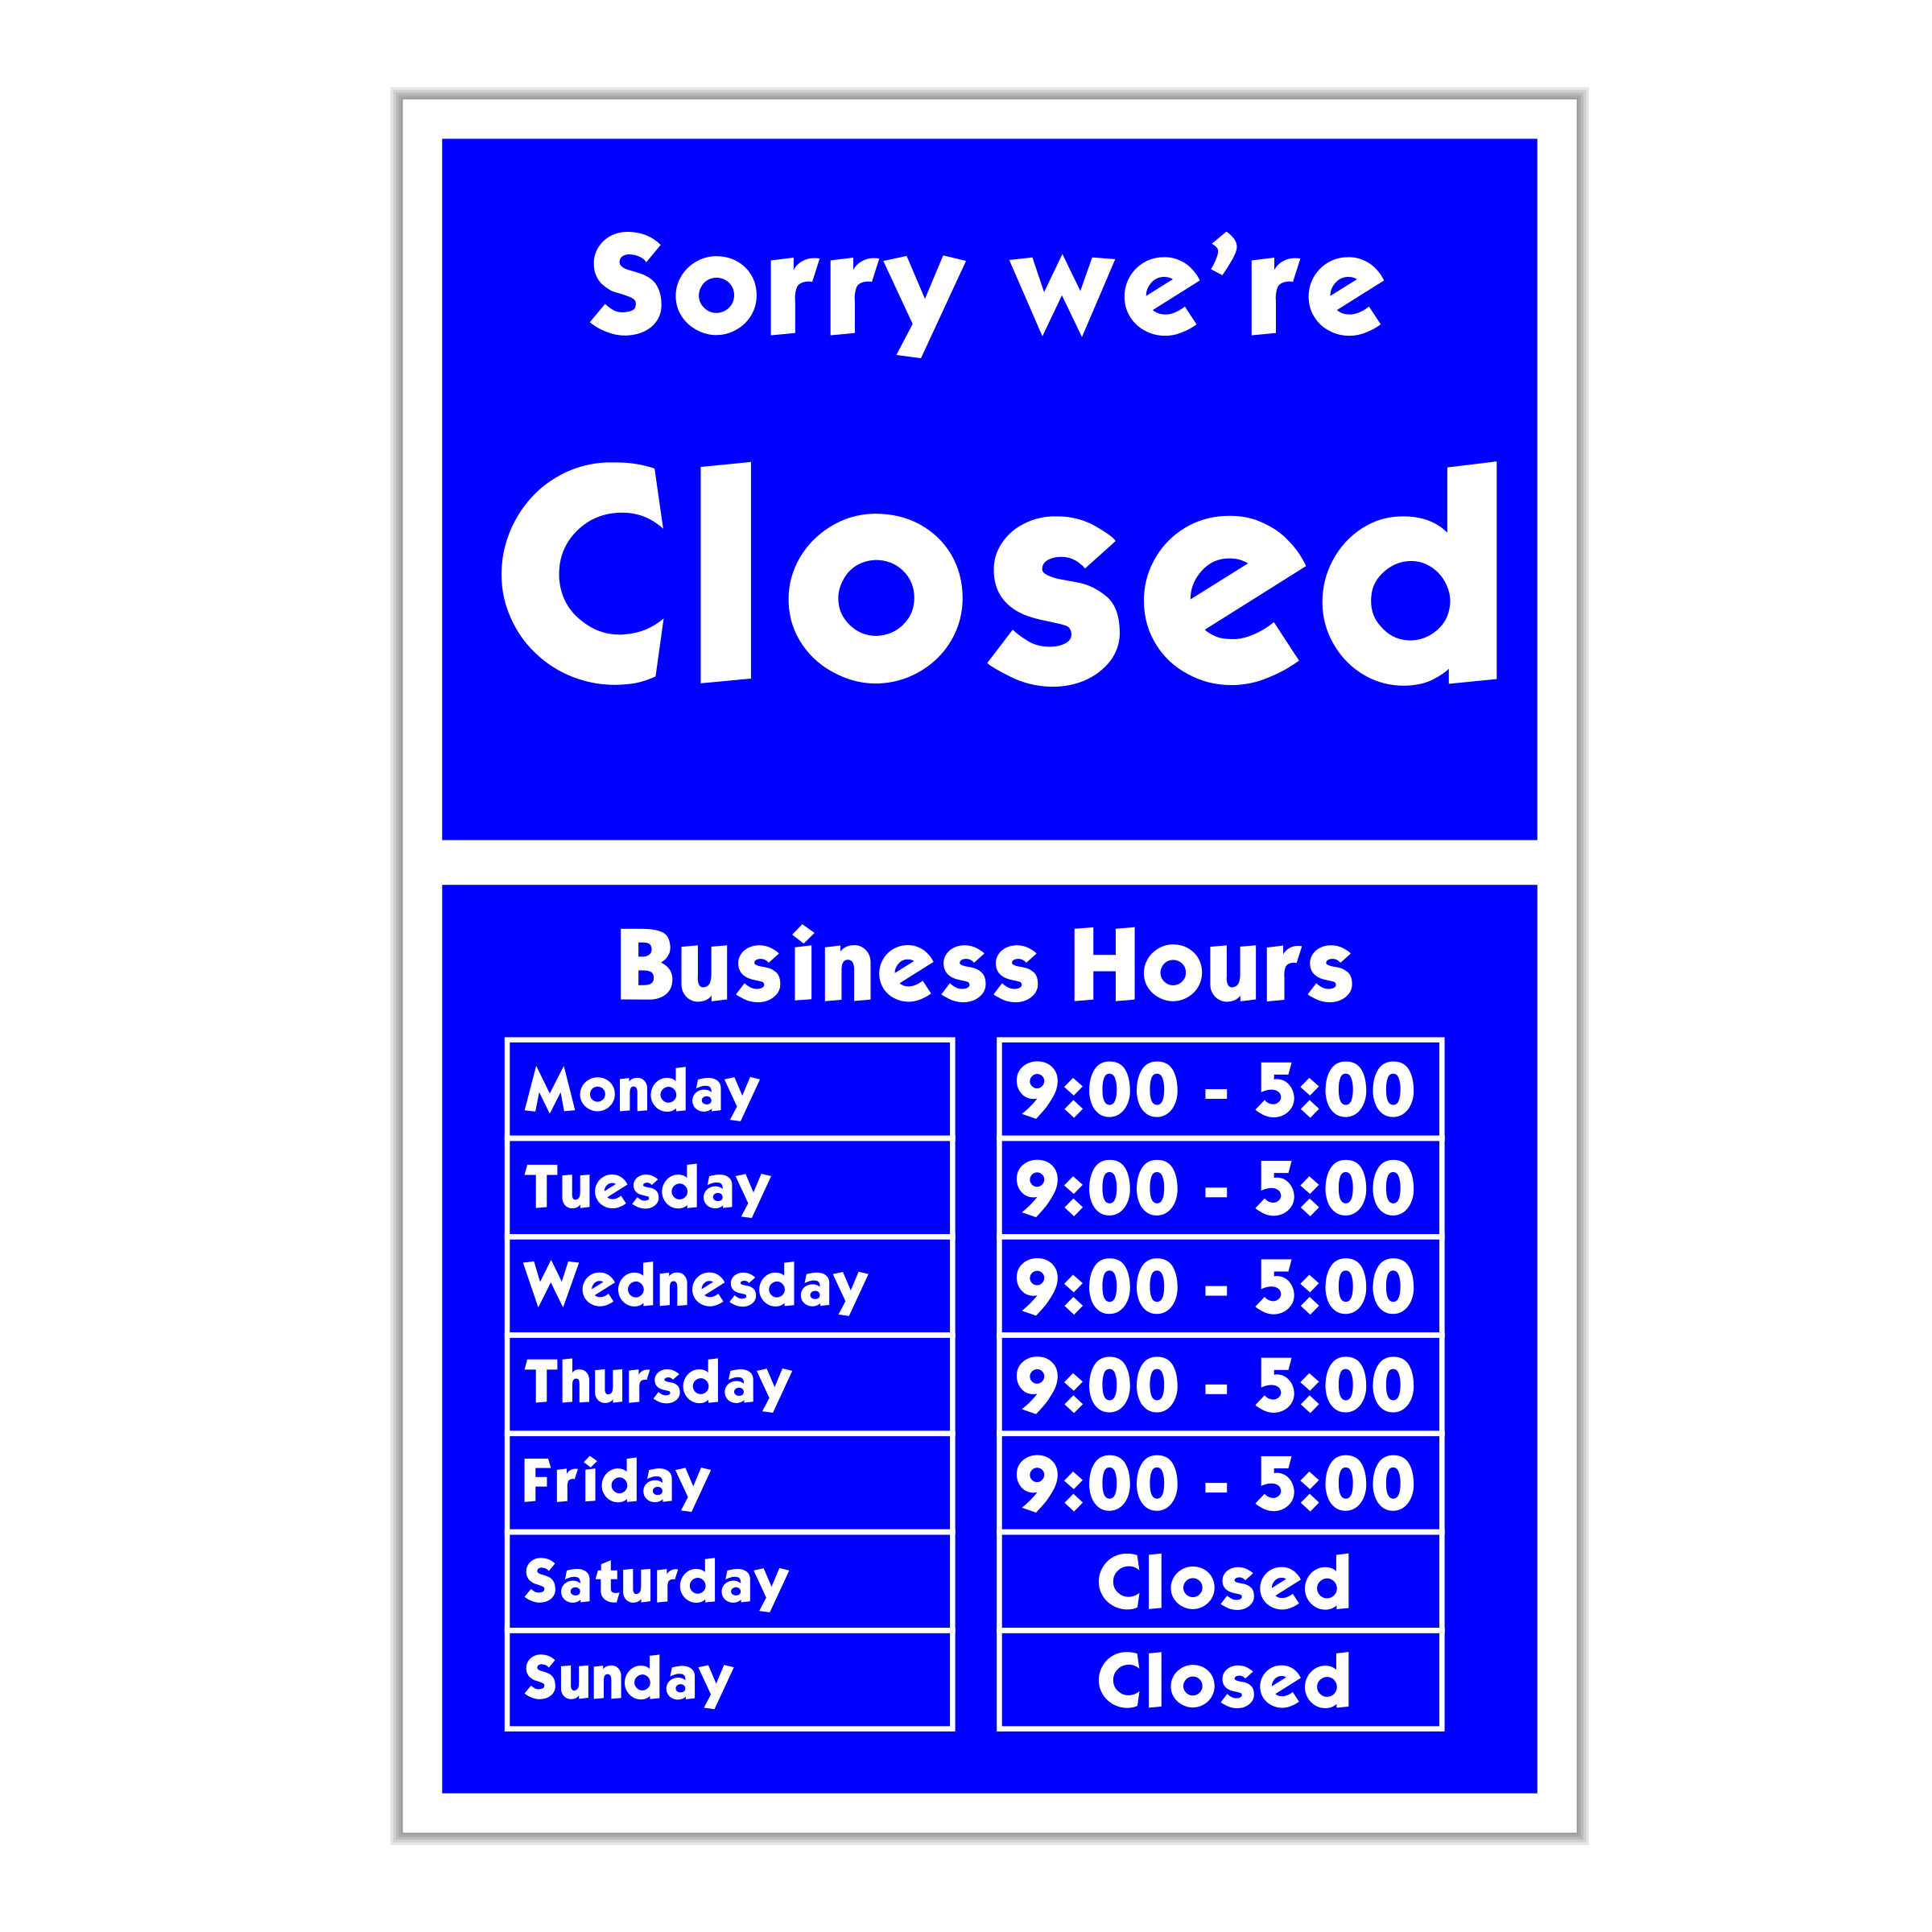 Sorry we're closed by jhnri4